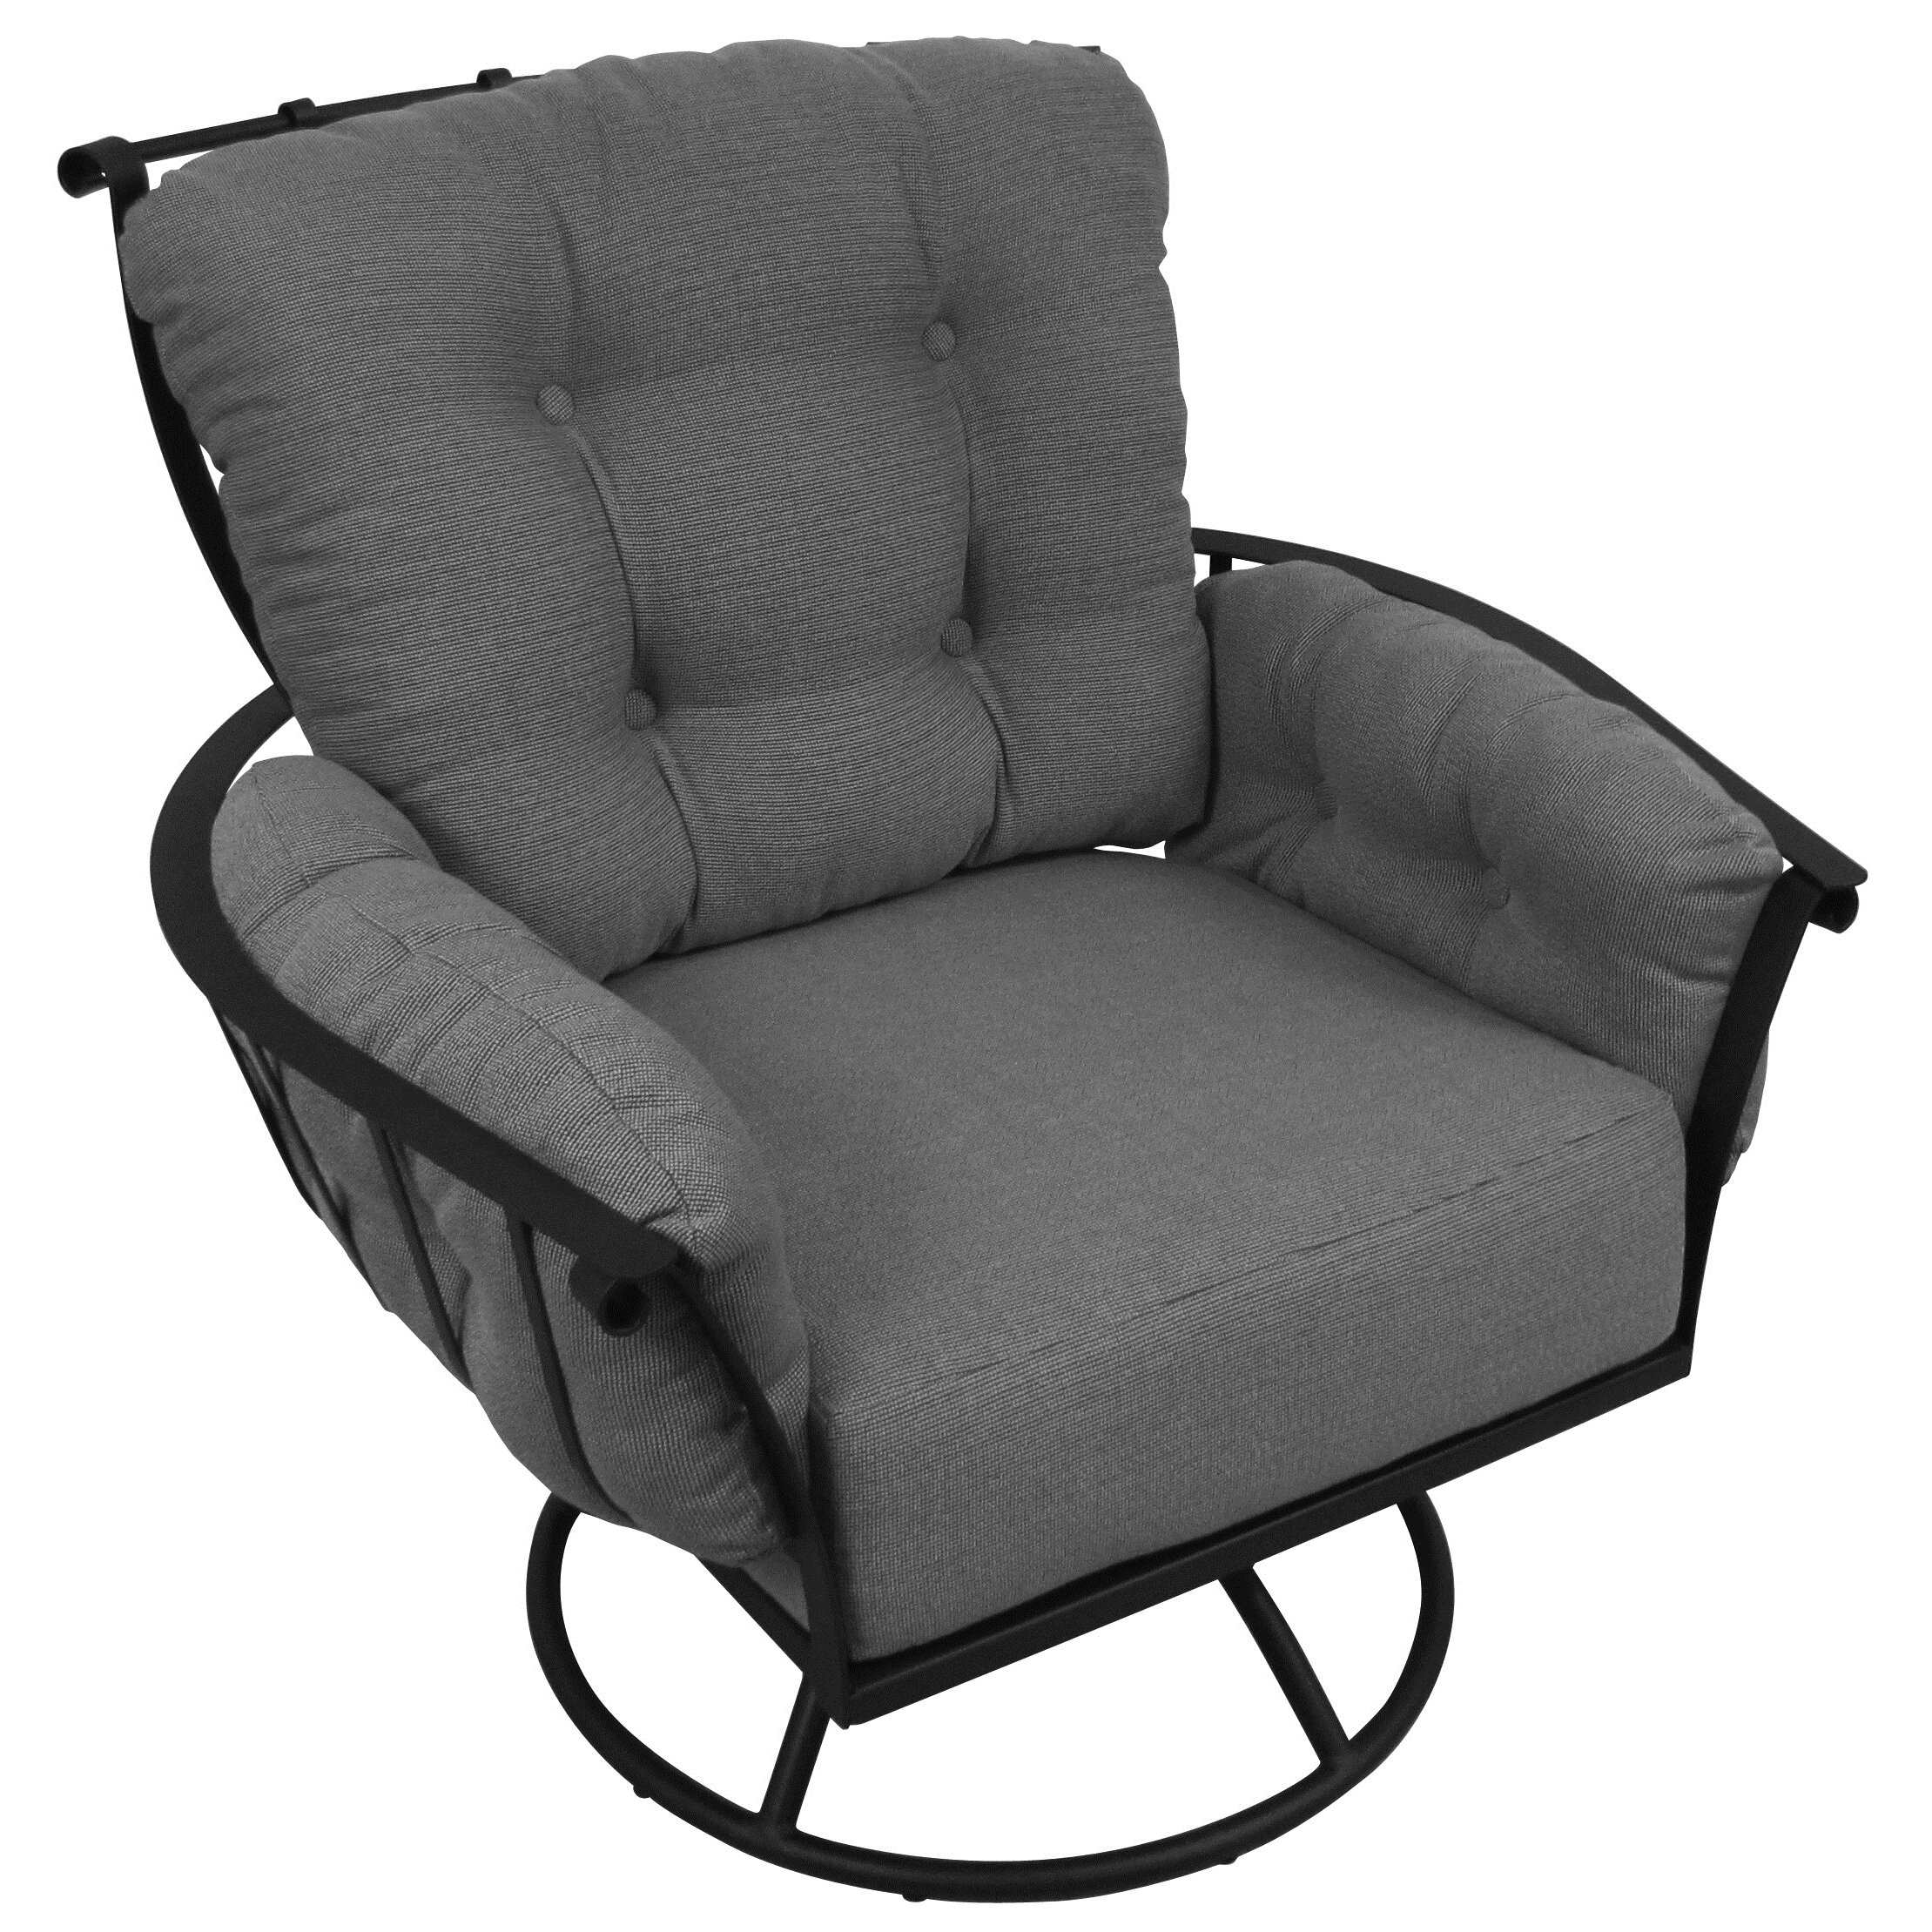 Meadowcraft Swivel Rocking Chair with Cushions & Reviews ...